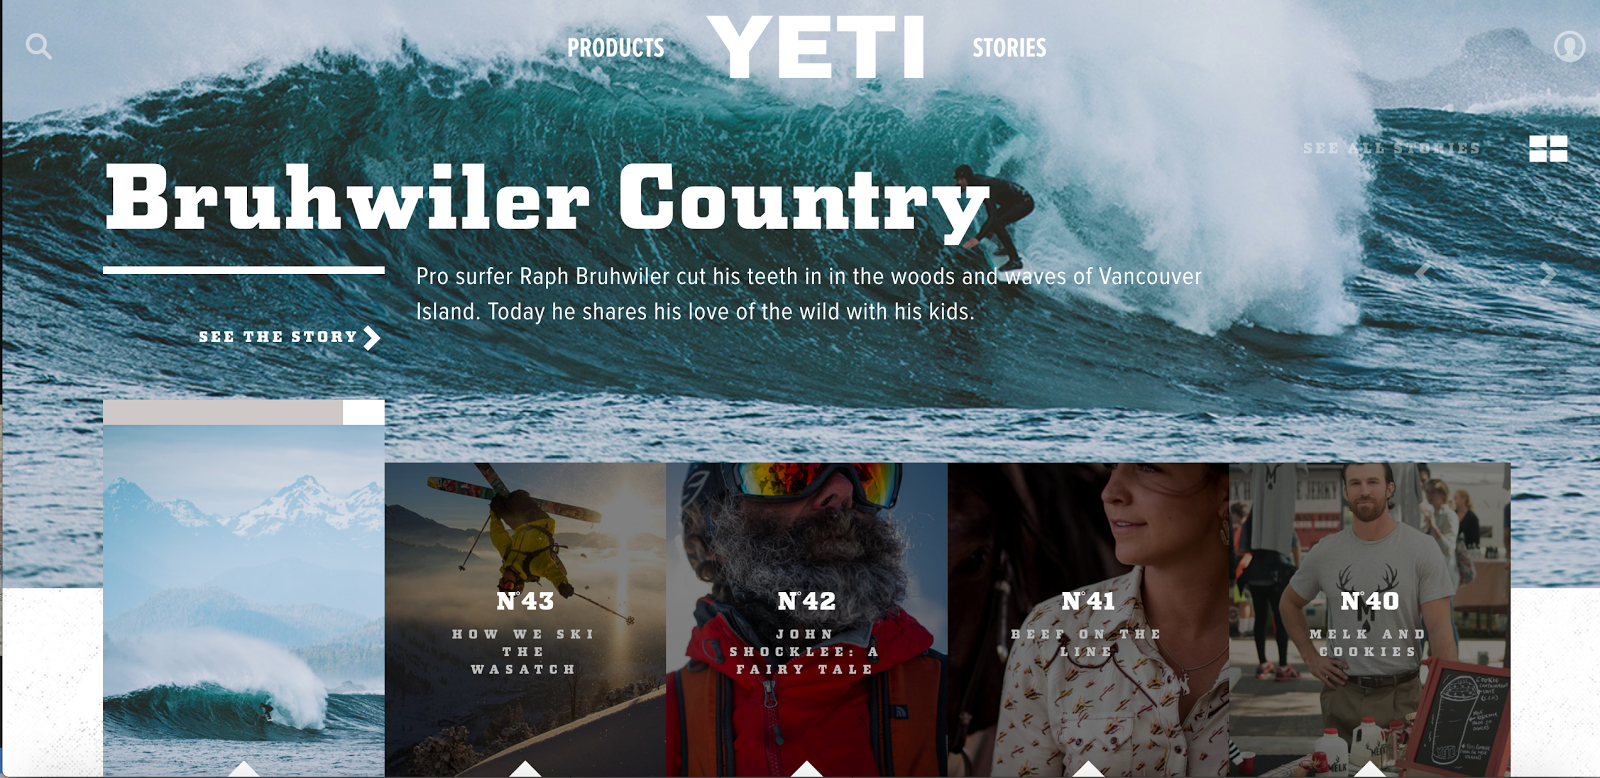 Example of stories produced by Yeti